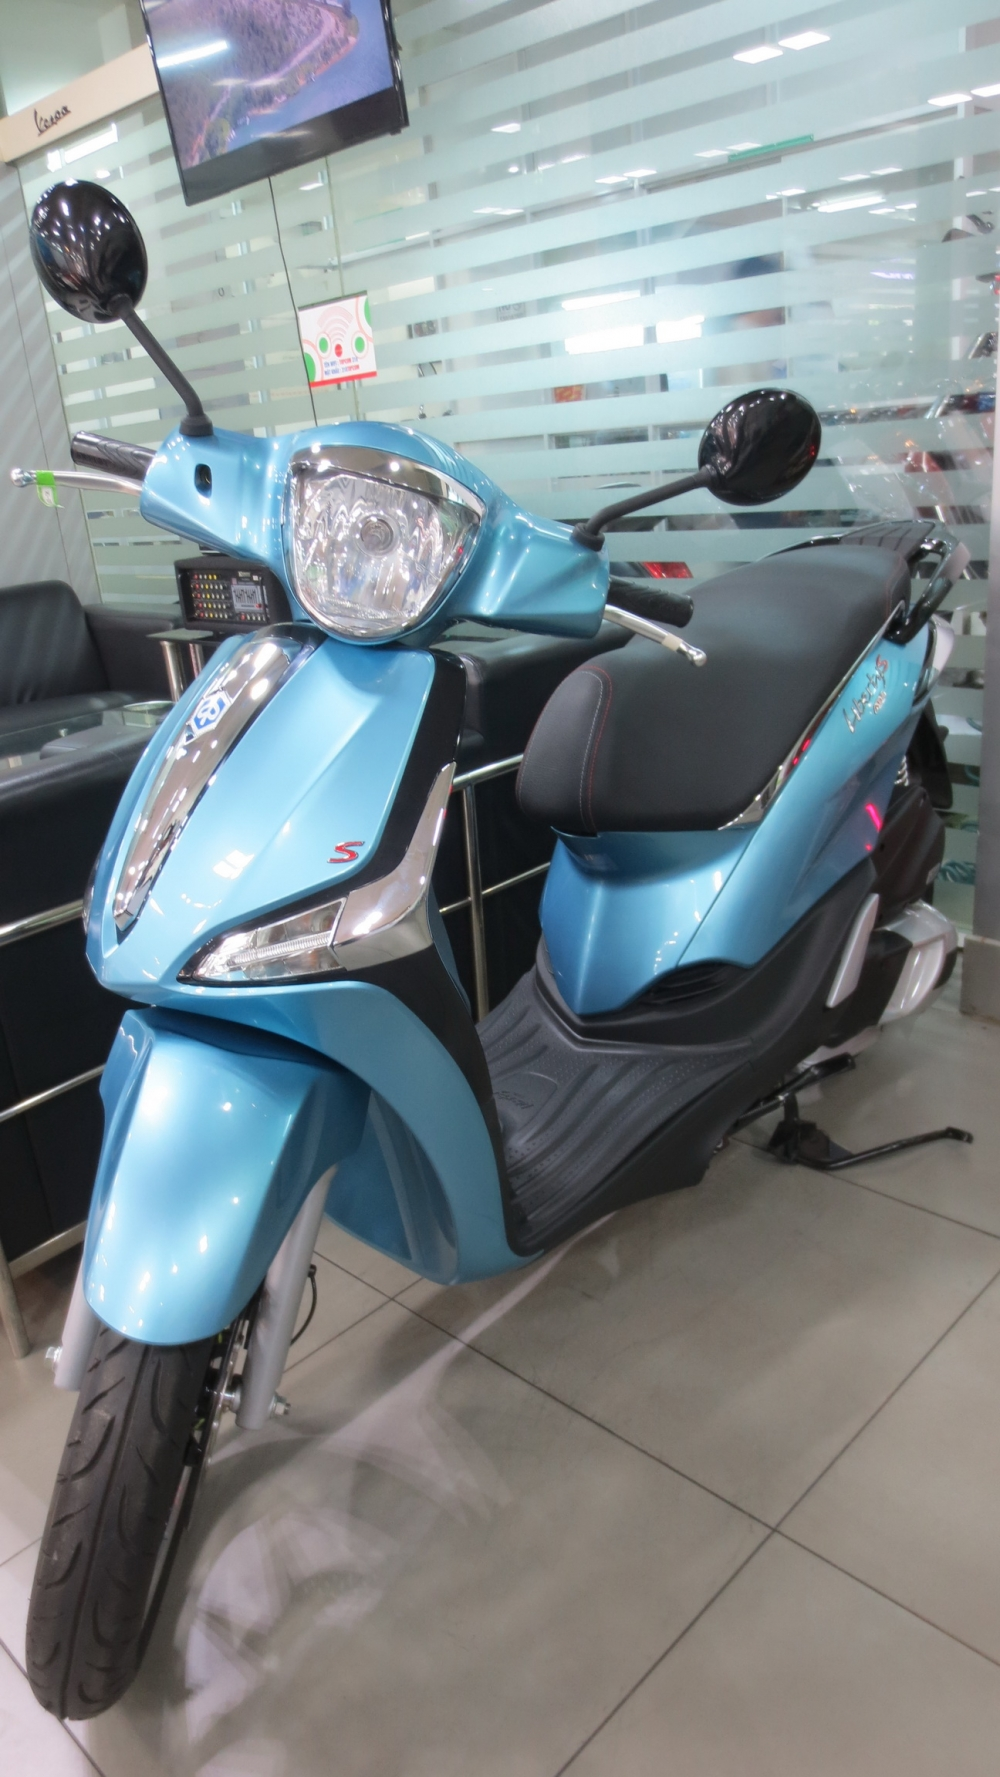 VESPA chinh hang gia tot nhat Update lien tuc - 31